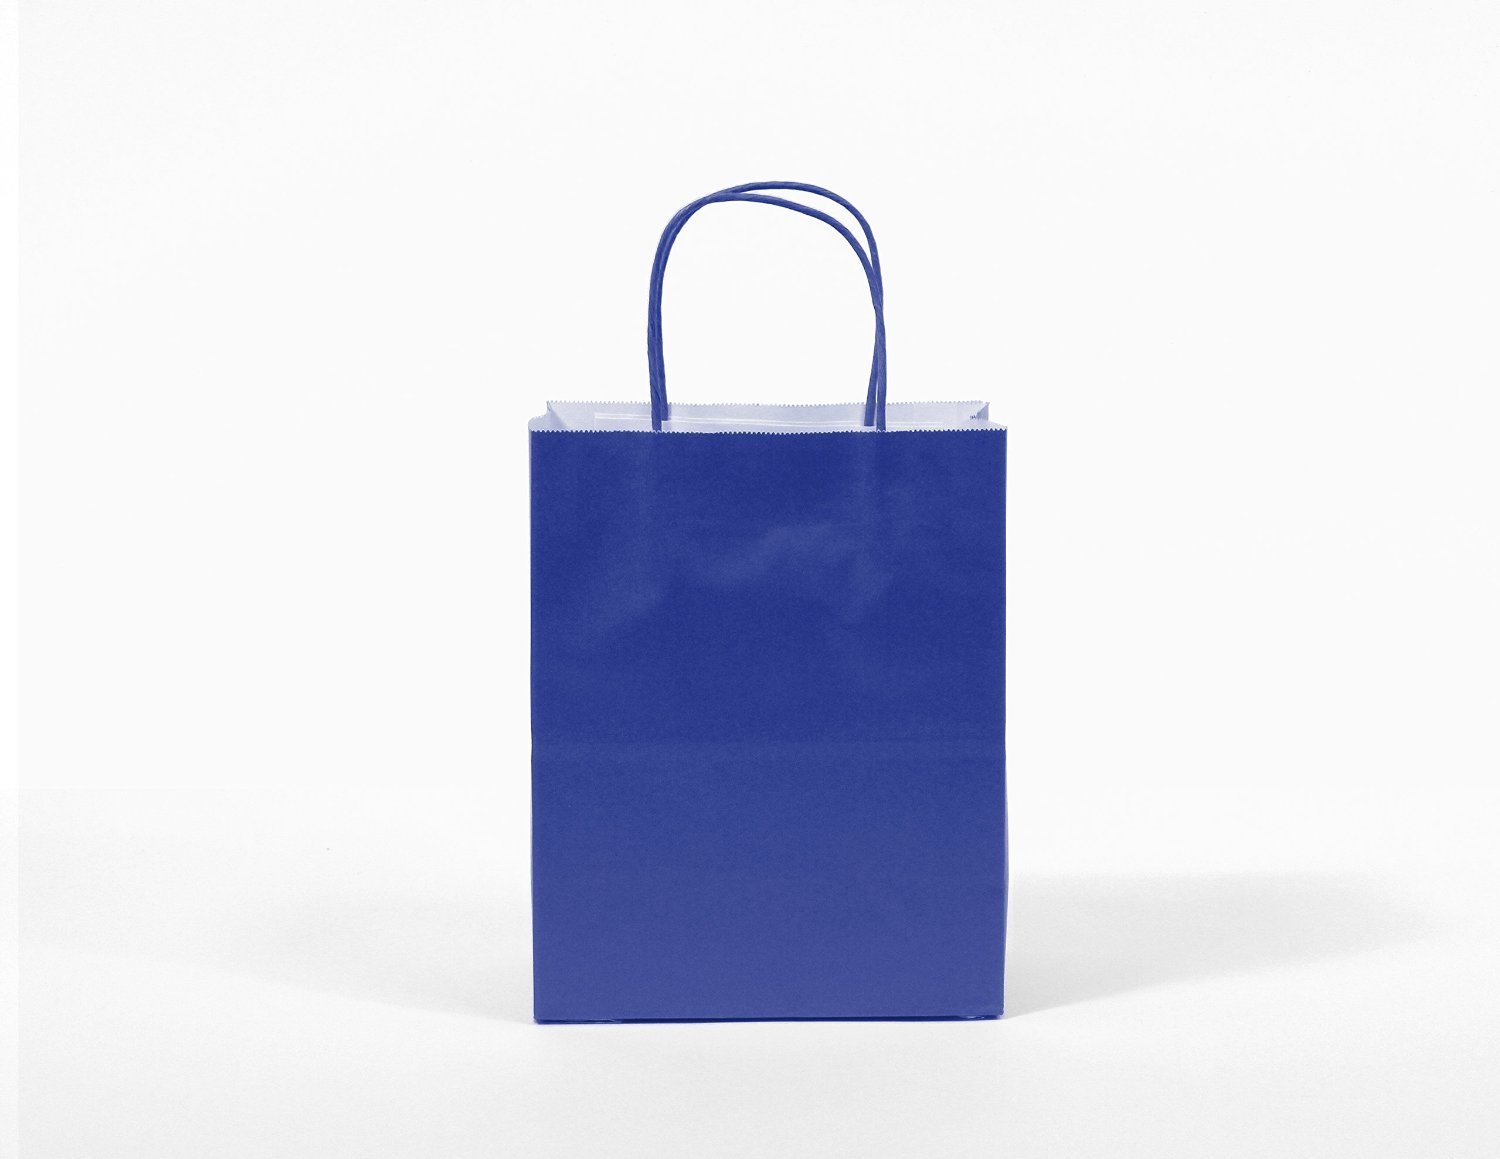 12CT MEDIUM ROYAL BLUE BIODEGRADABLE, FOOD SAFE INK & PAPER, PREMIUM QUALITY PAPER (STURDY & THICKER), KRAFT BAG WITH COLORED STURDY HANDLE